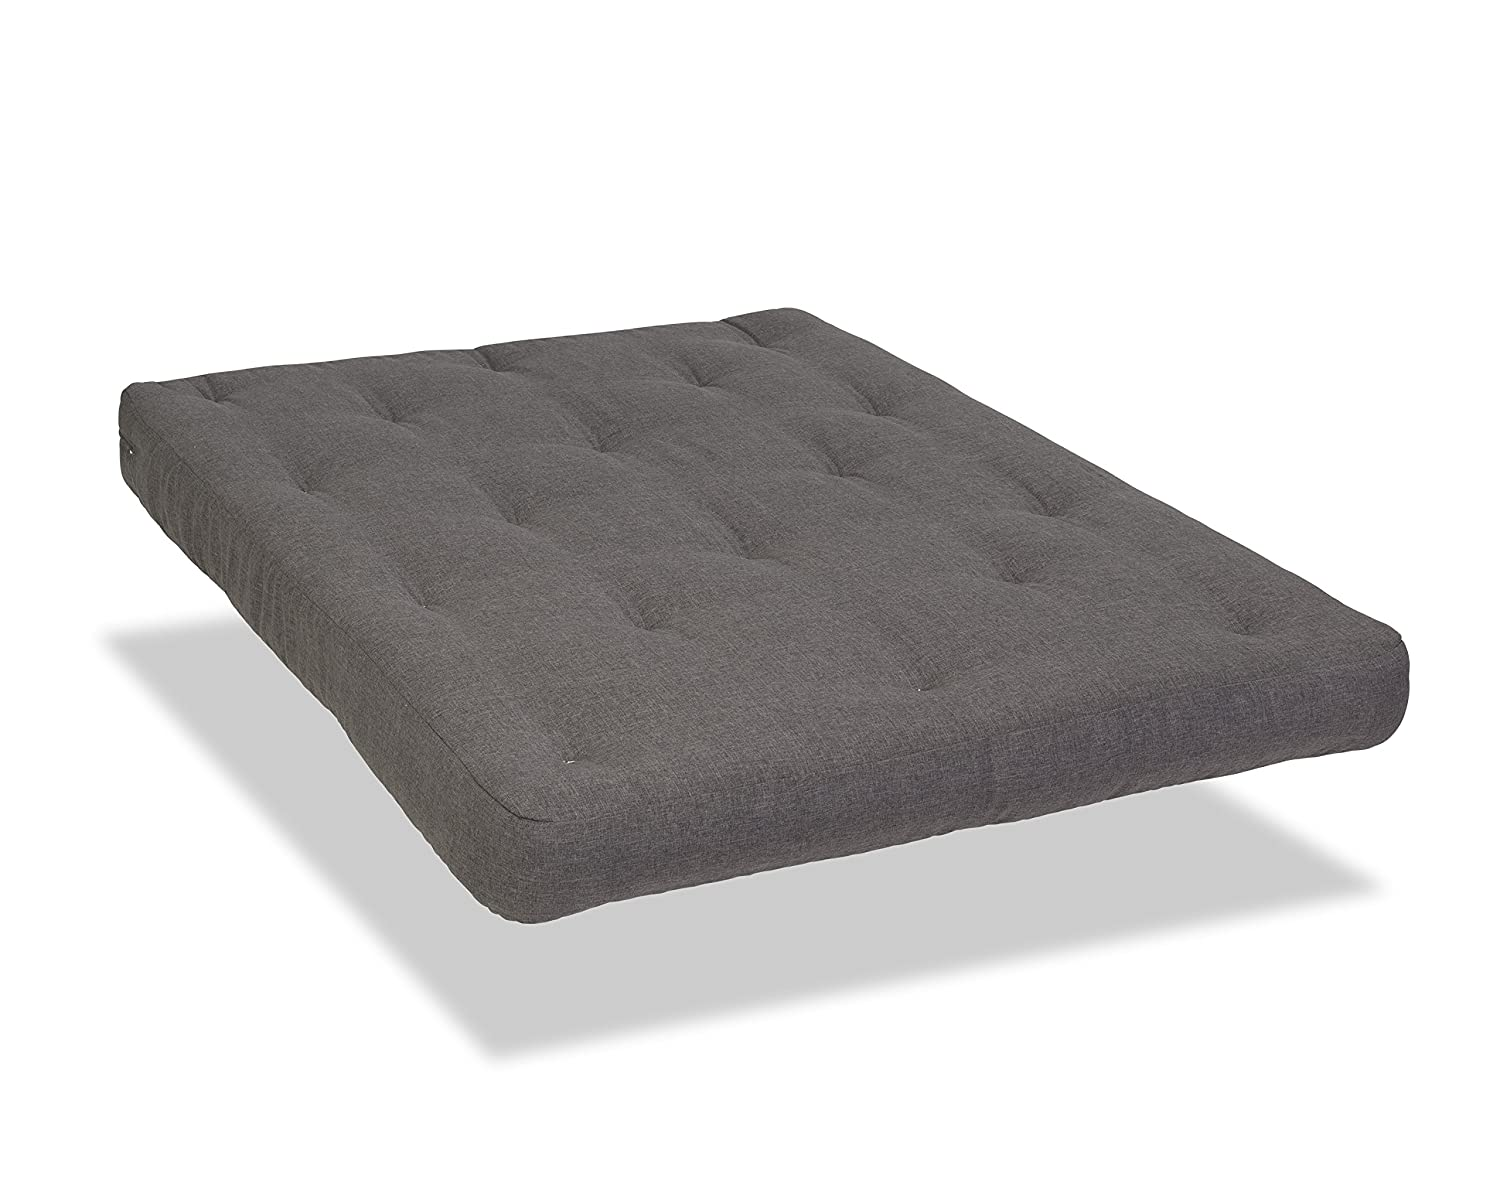 Serta Chestnut Double Sided Foam and Cotton Full Futon Mattress, Black, Made in the USA Wolf Corp S820B-2030